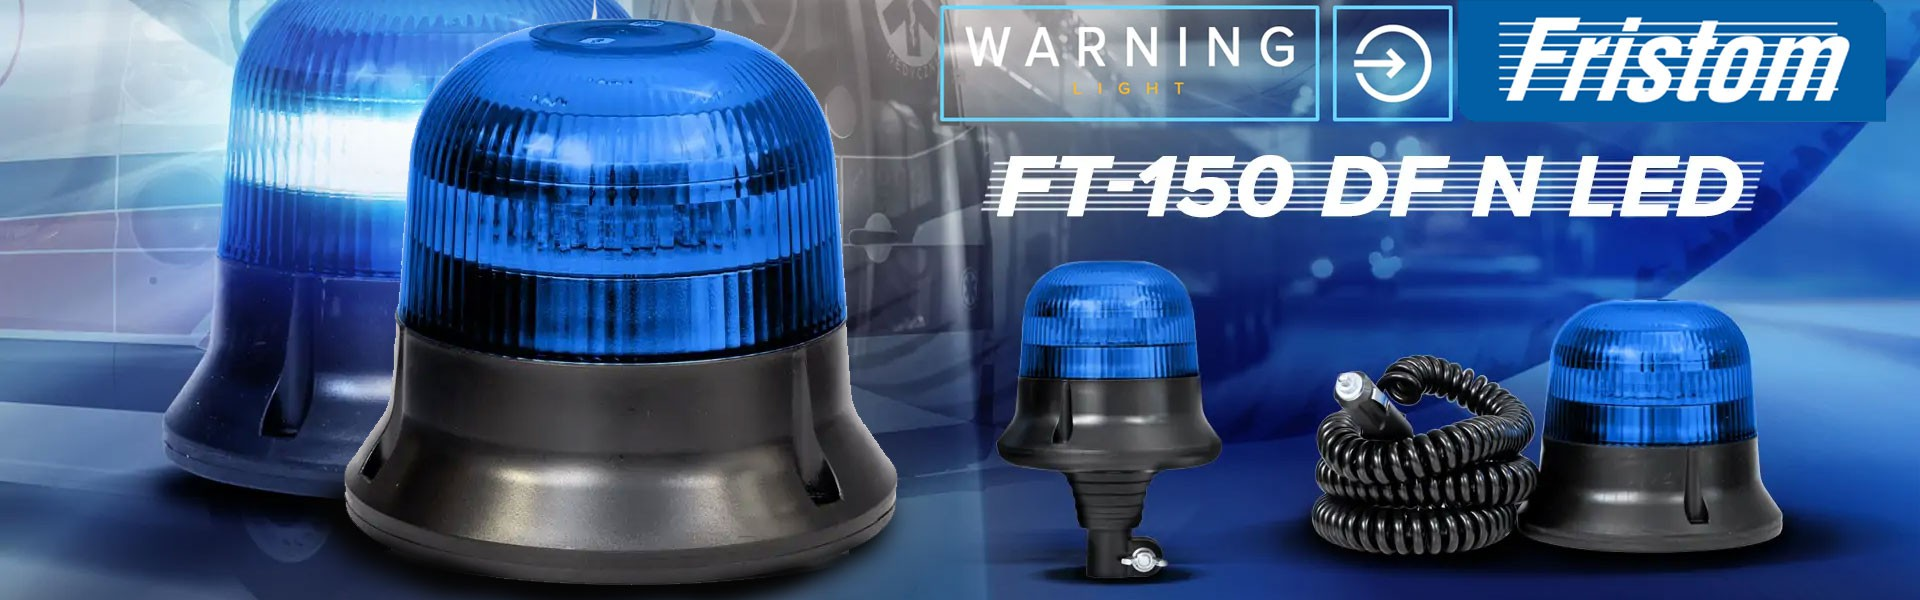 FAROS ROTATIVOS AZULES FT-150 DF N LED